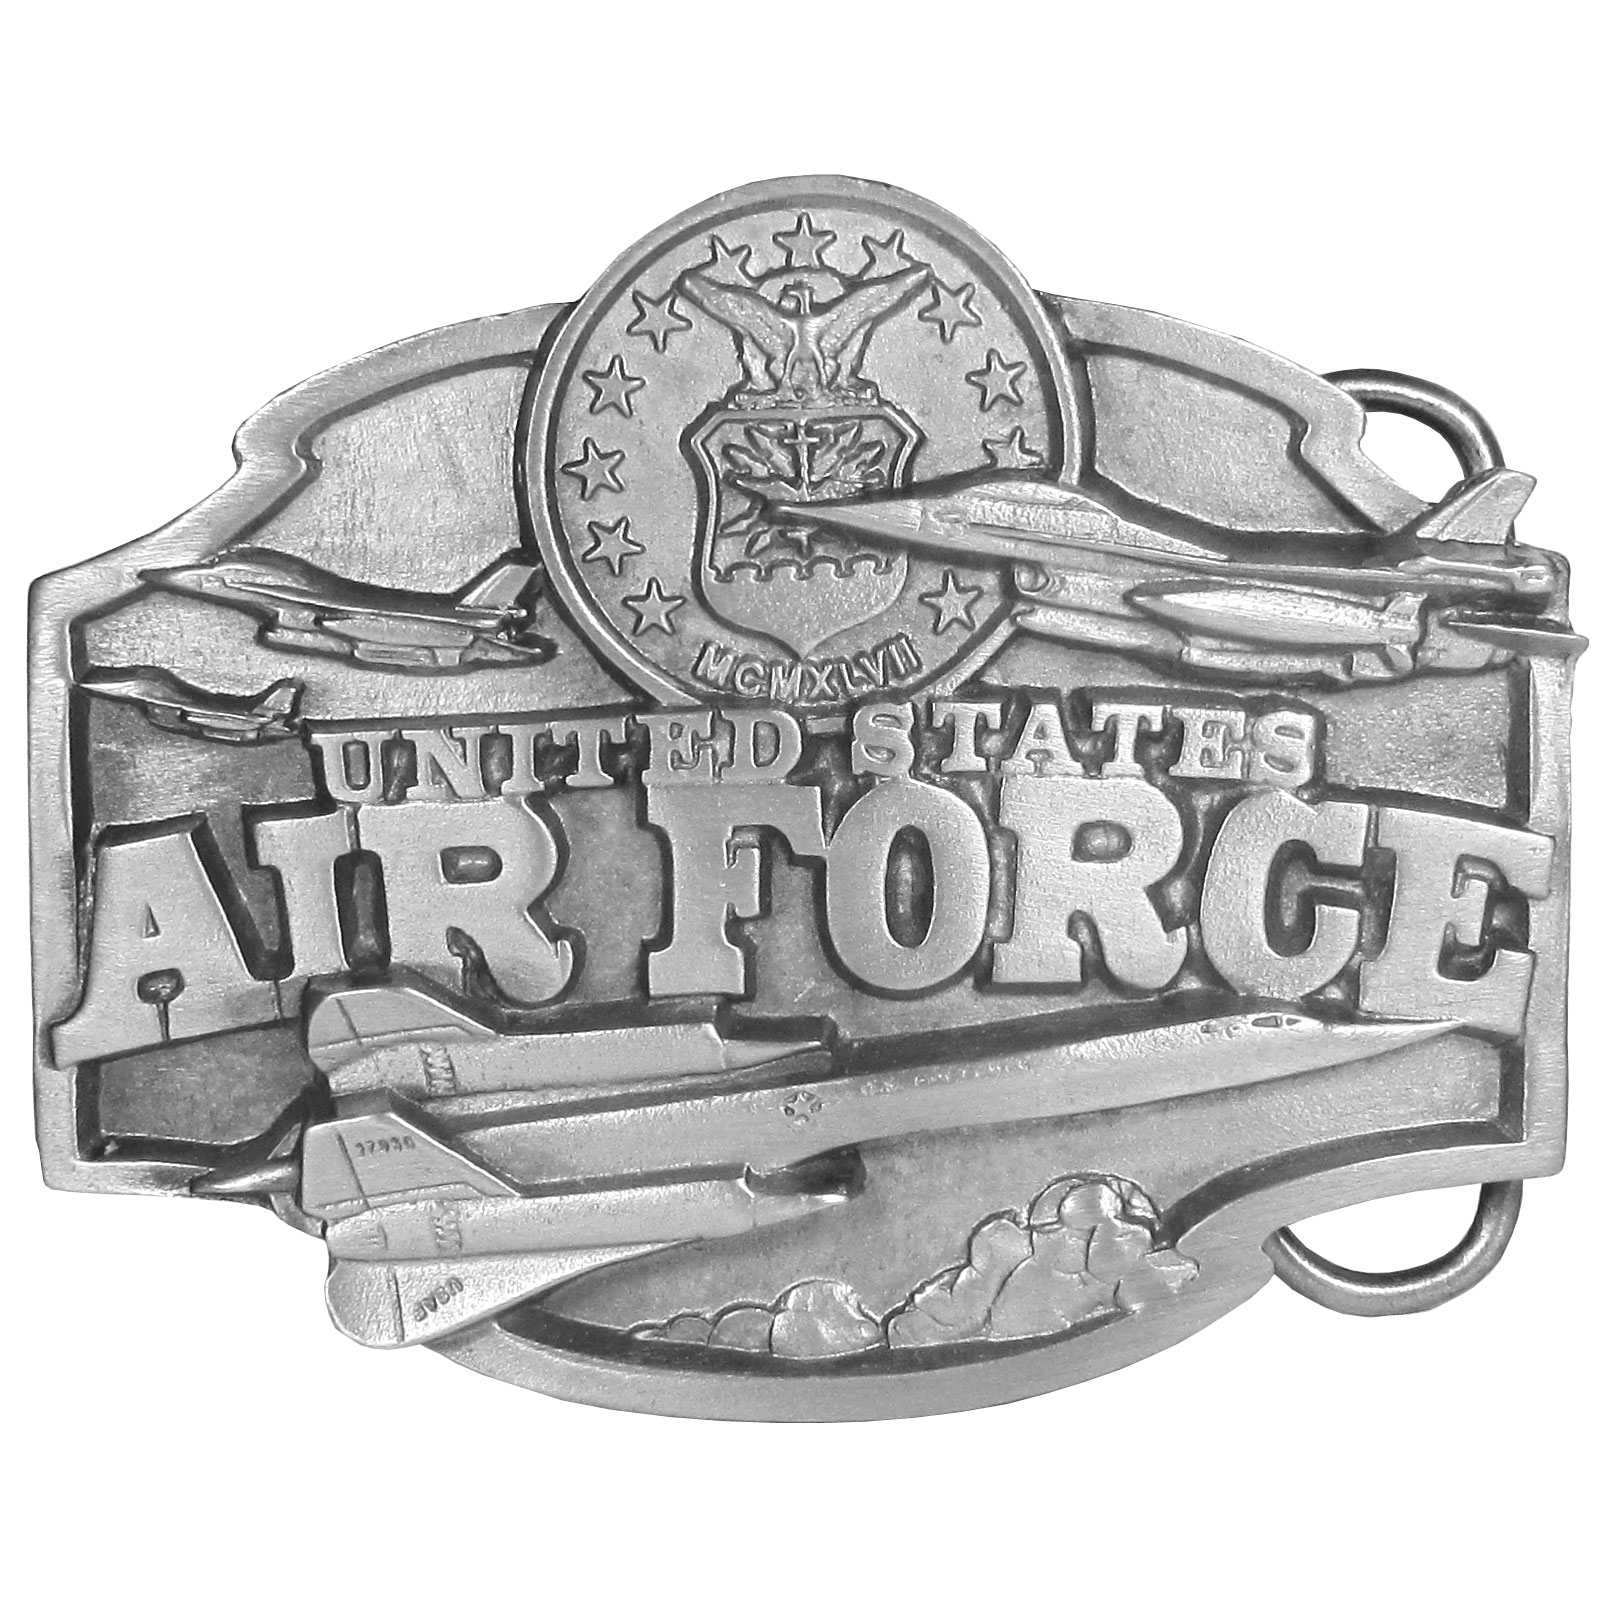 "Air Force Antiqued Belt Buckle - ""Our United States Air force belt buckle features """"United States Air Force"""" in bold surrounded by planes and the U.S. Air force symbol. On the back are the words """"In 1926 Congress created the Army Air Corps. Nineteen years later, in 1947, the United States Air Force was established as a separate military branch. Today the U.S. Air Force is second to none."""""""